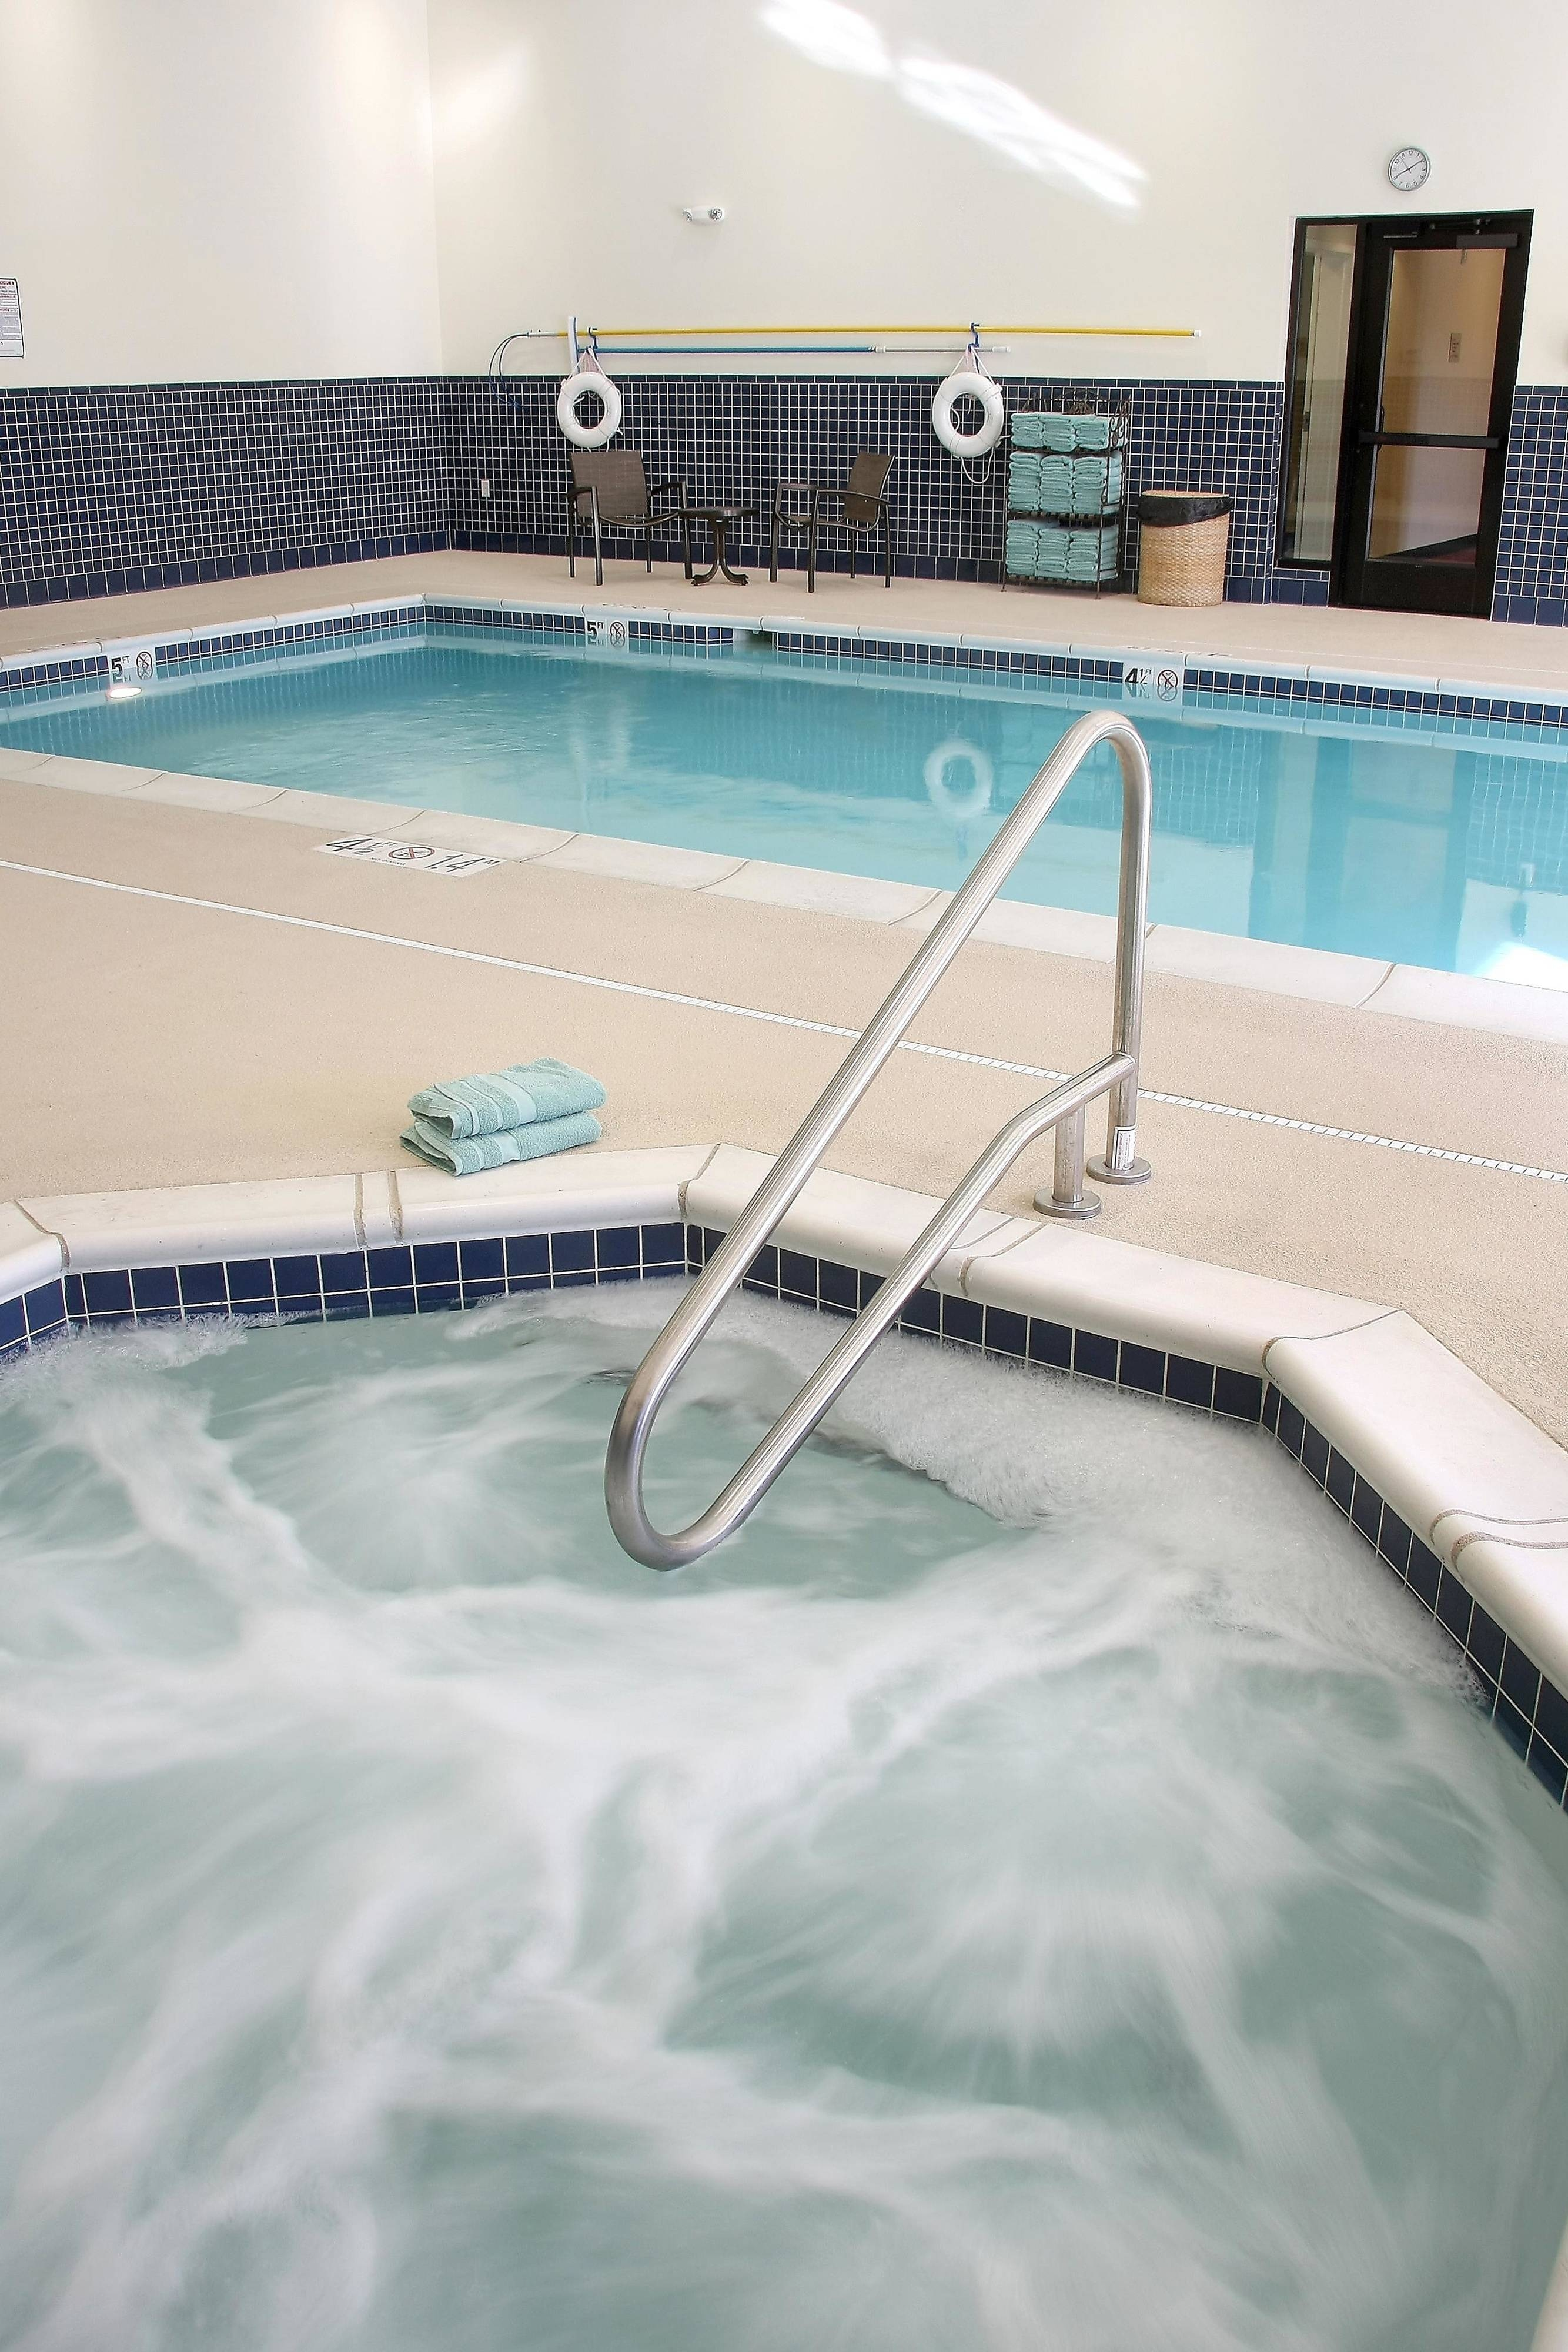 Farmington TownePlace Suites Hotel Indoor Pool & Spa